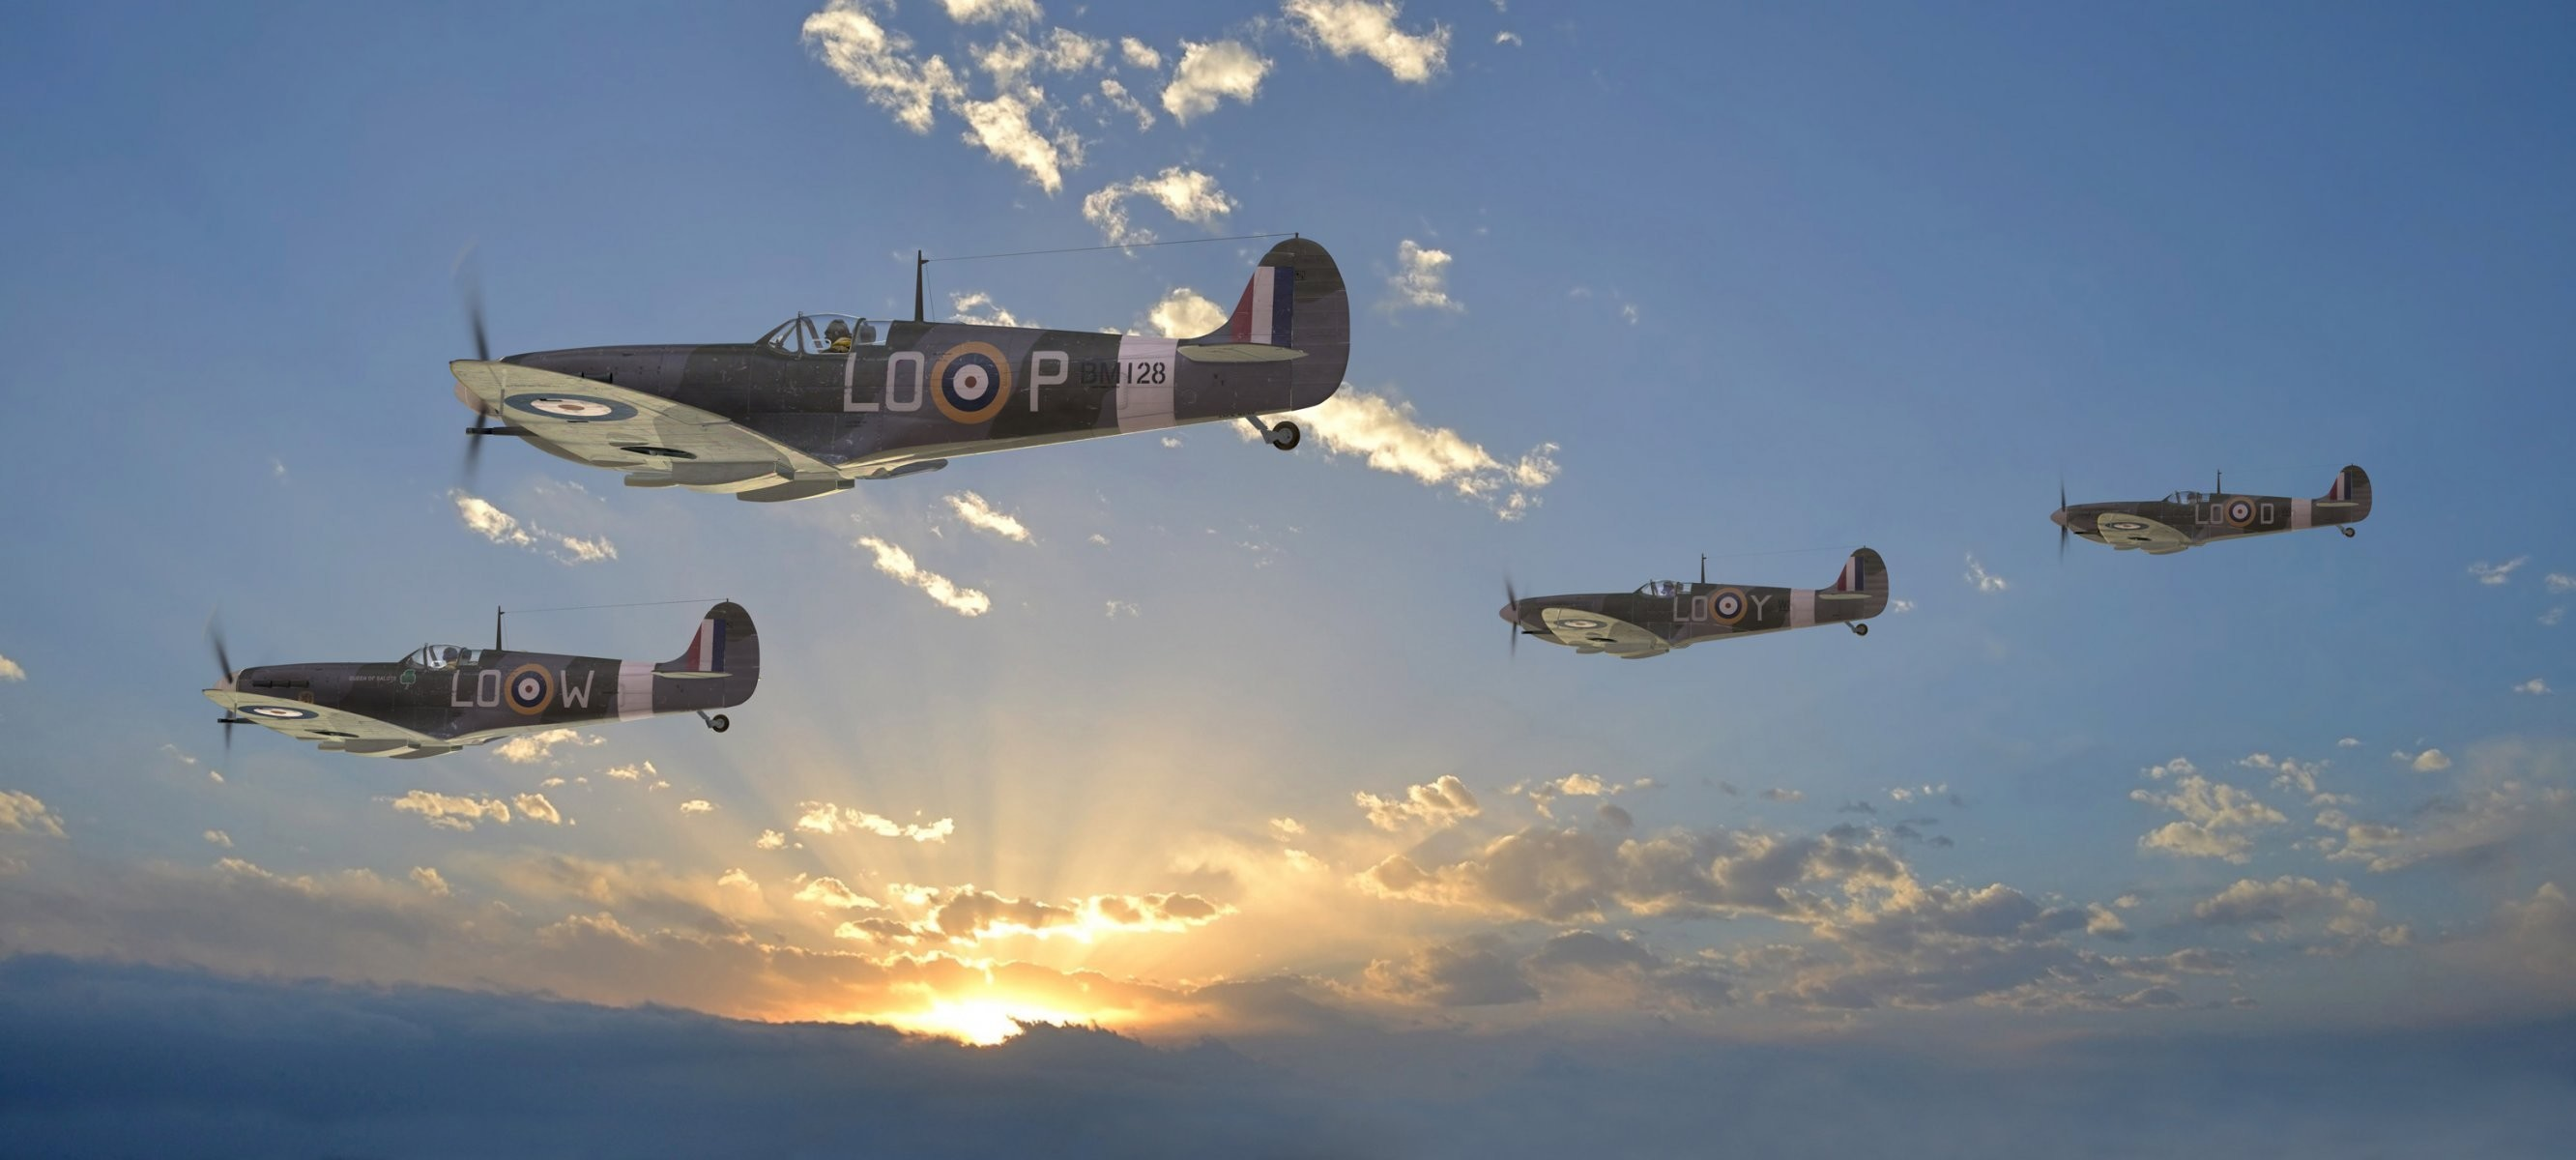 2665x1200 sky supermarine spitfire uk fighters clouds sun rays ww2 .